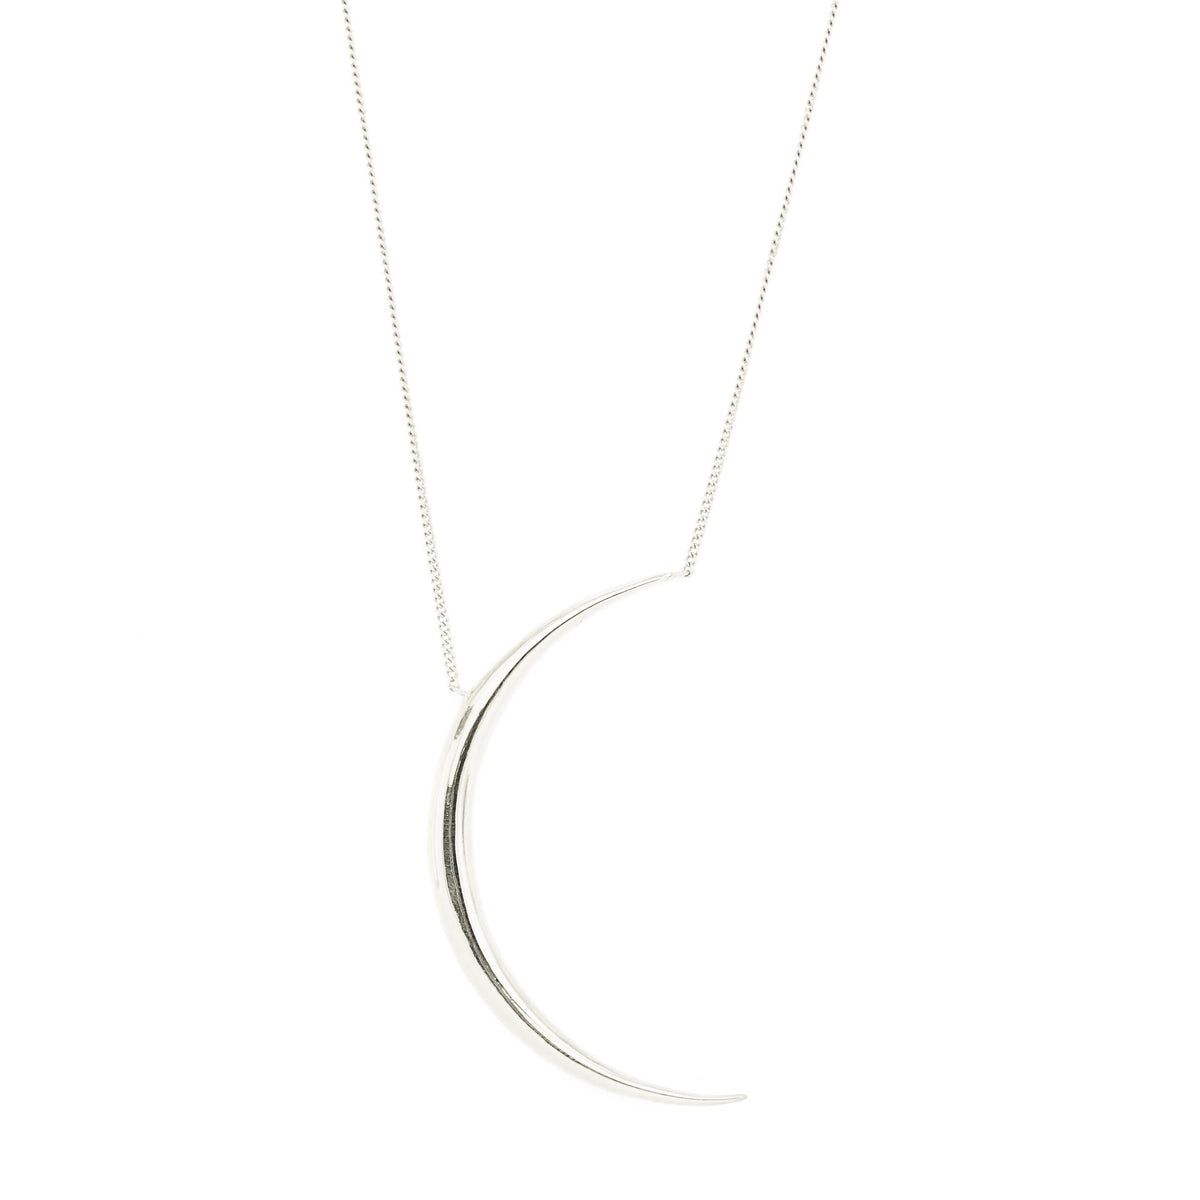 DREAM LUNA CRESCENT PENDANT NECKLACE - SILVER - SO PRETTY CARA COTTER